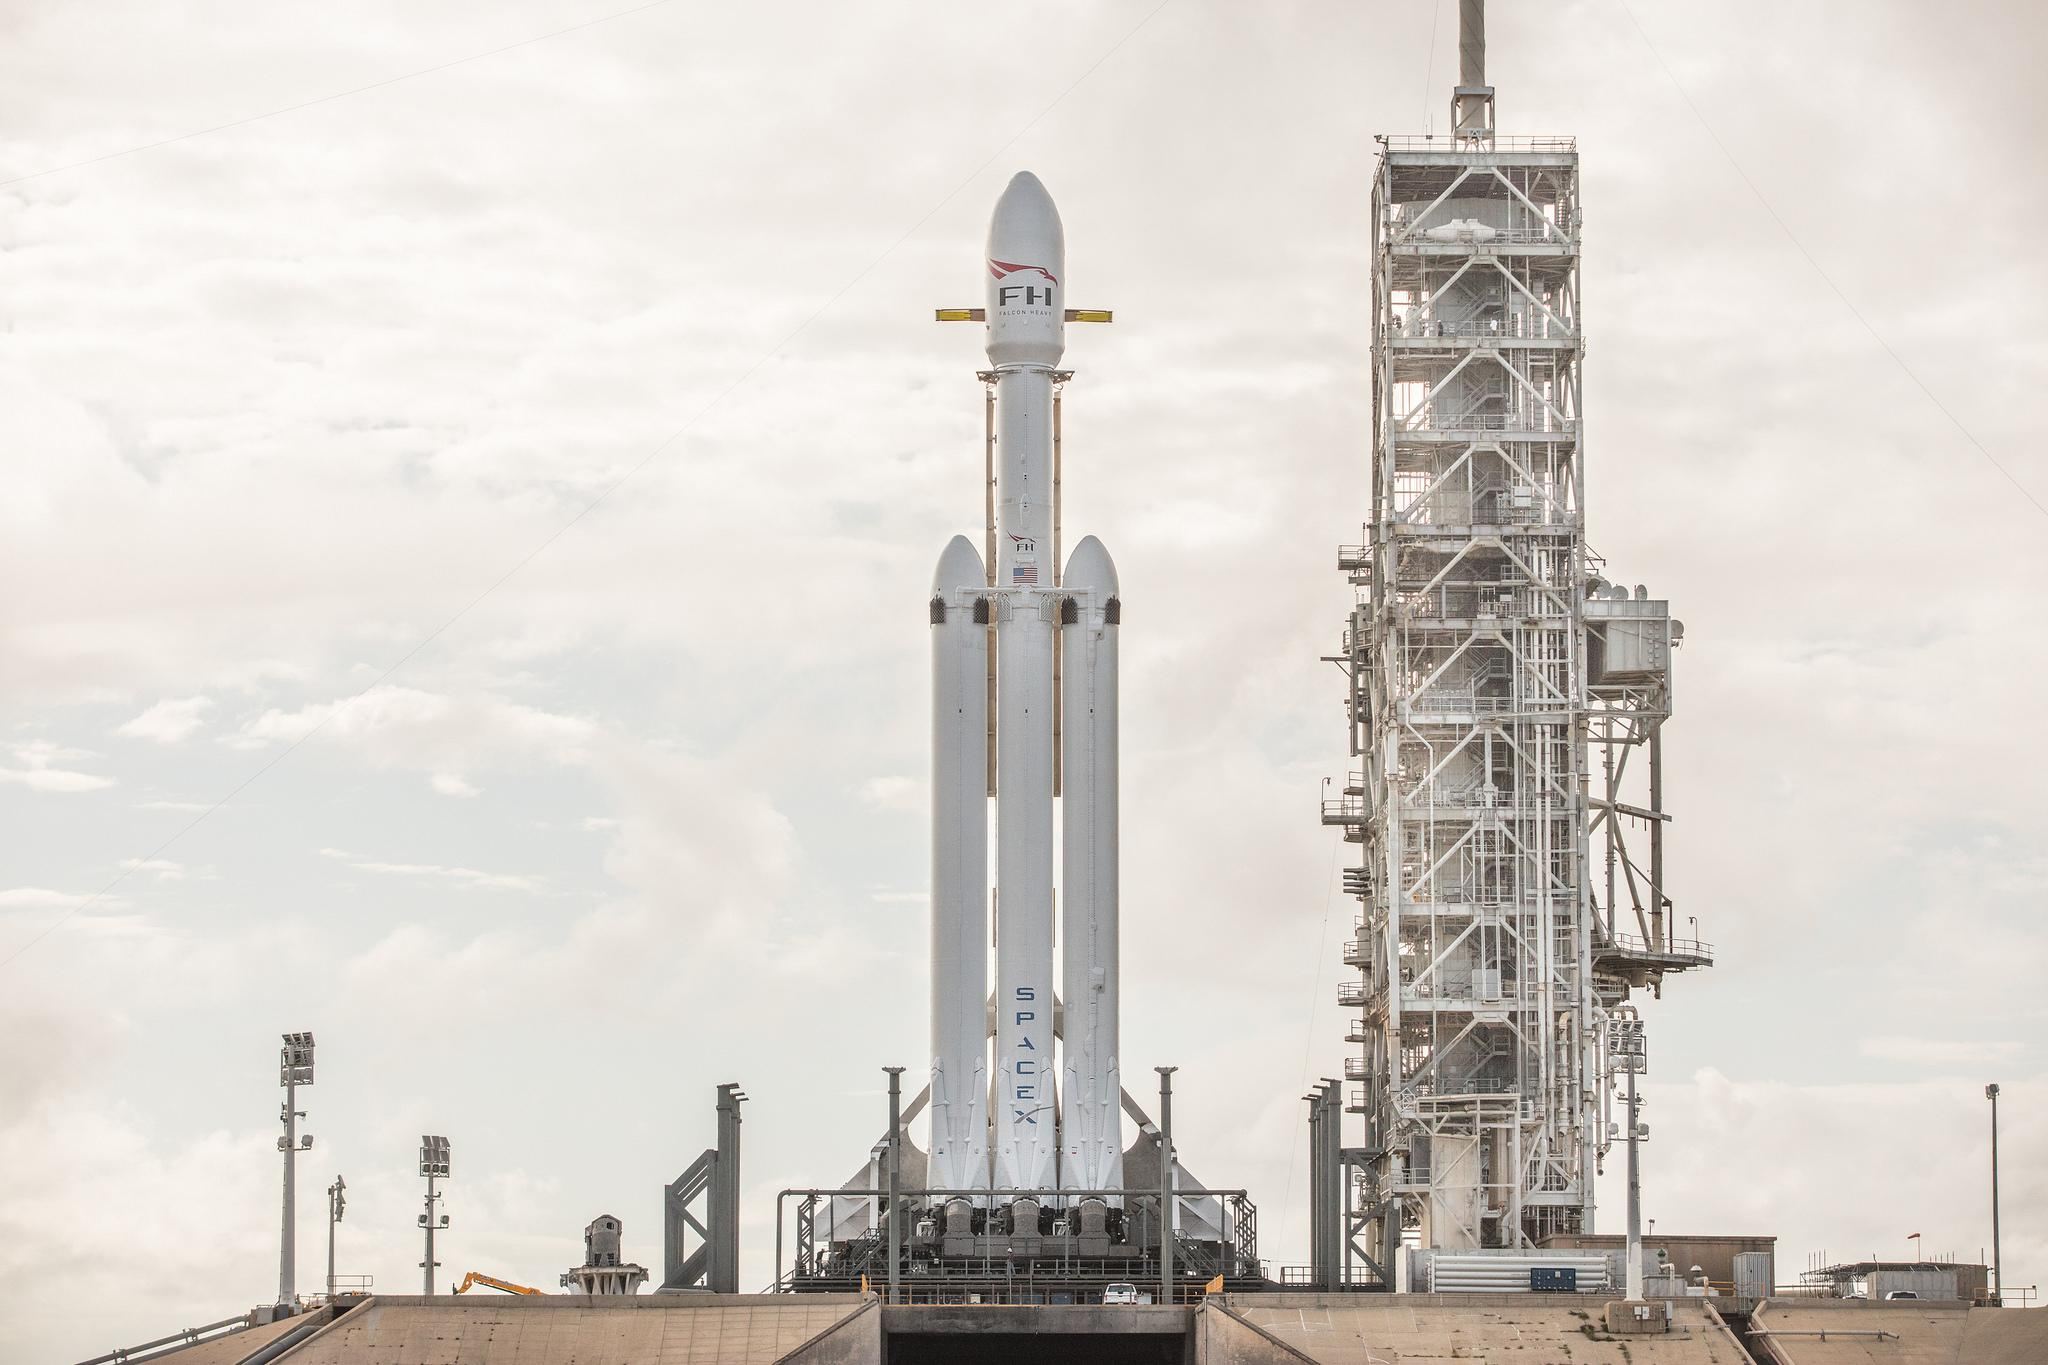 hangar spacex falcon 9 high resolution - photo #45